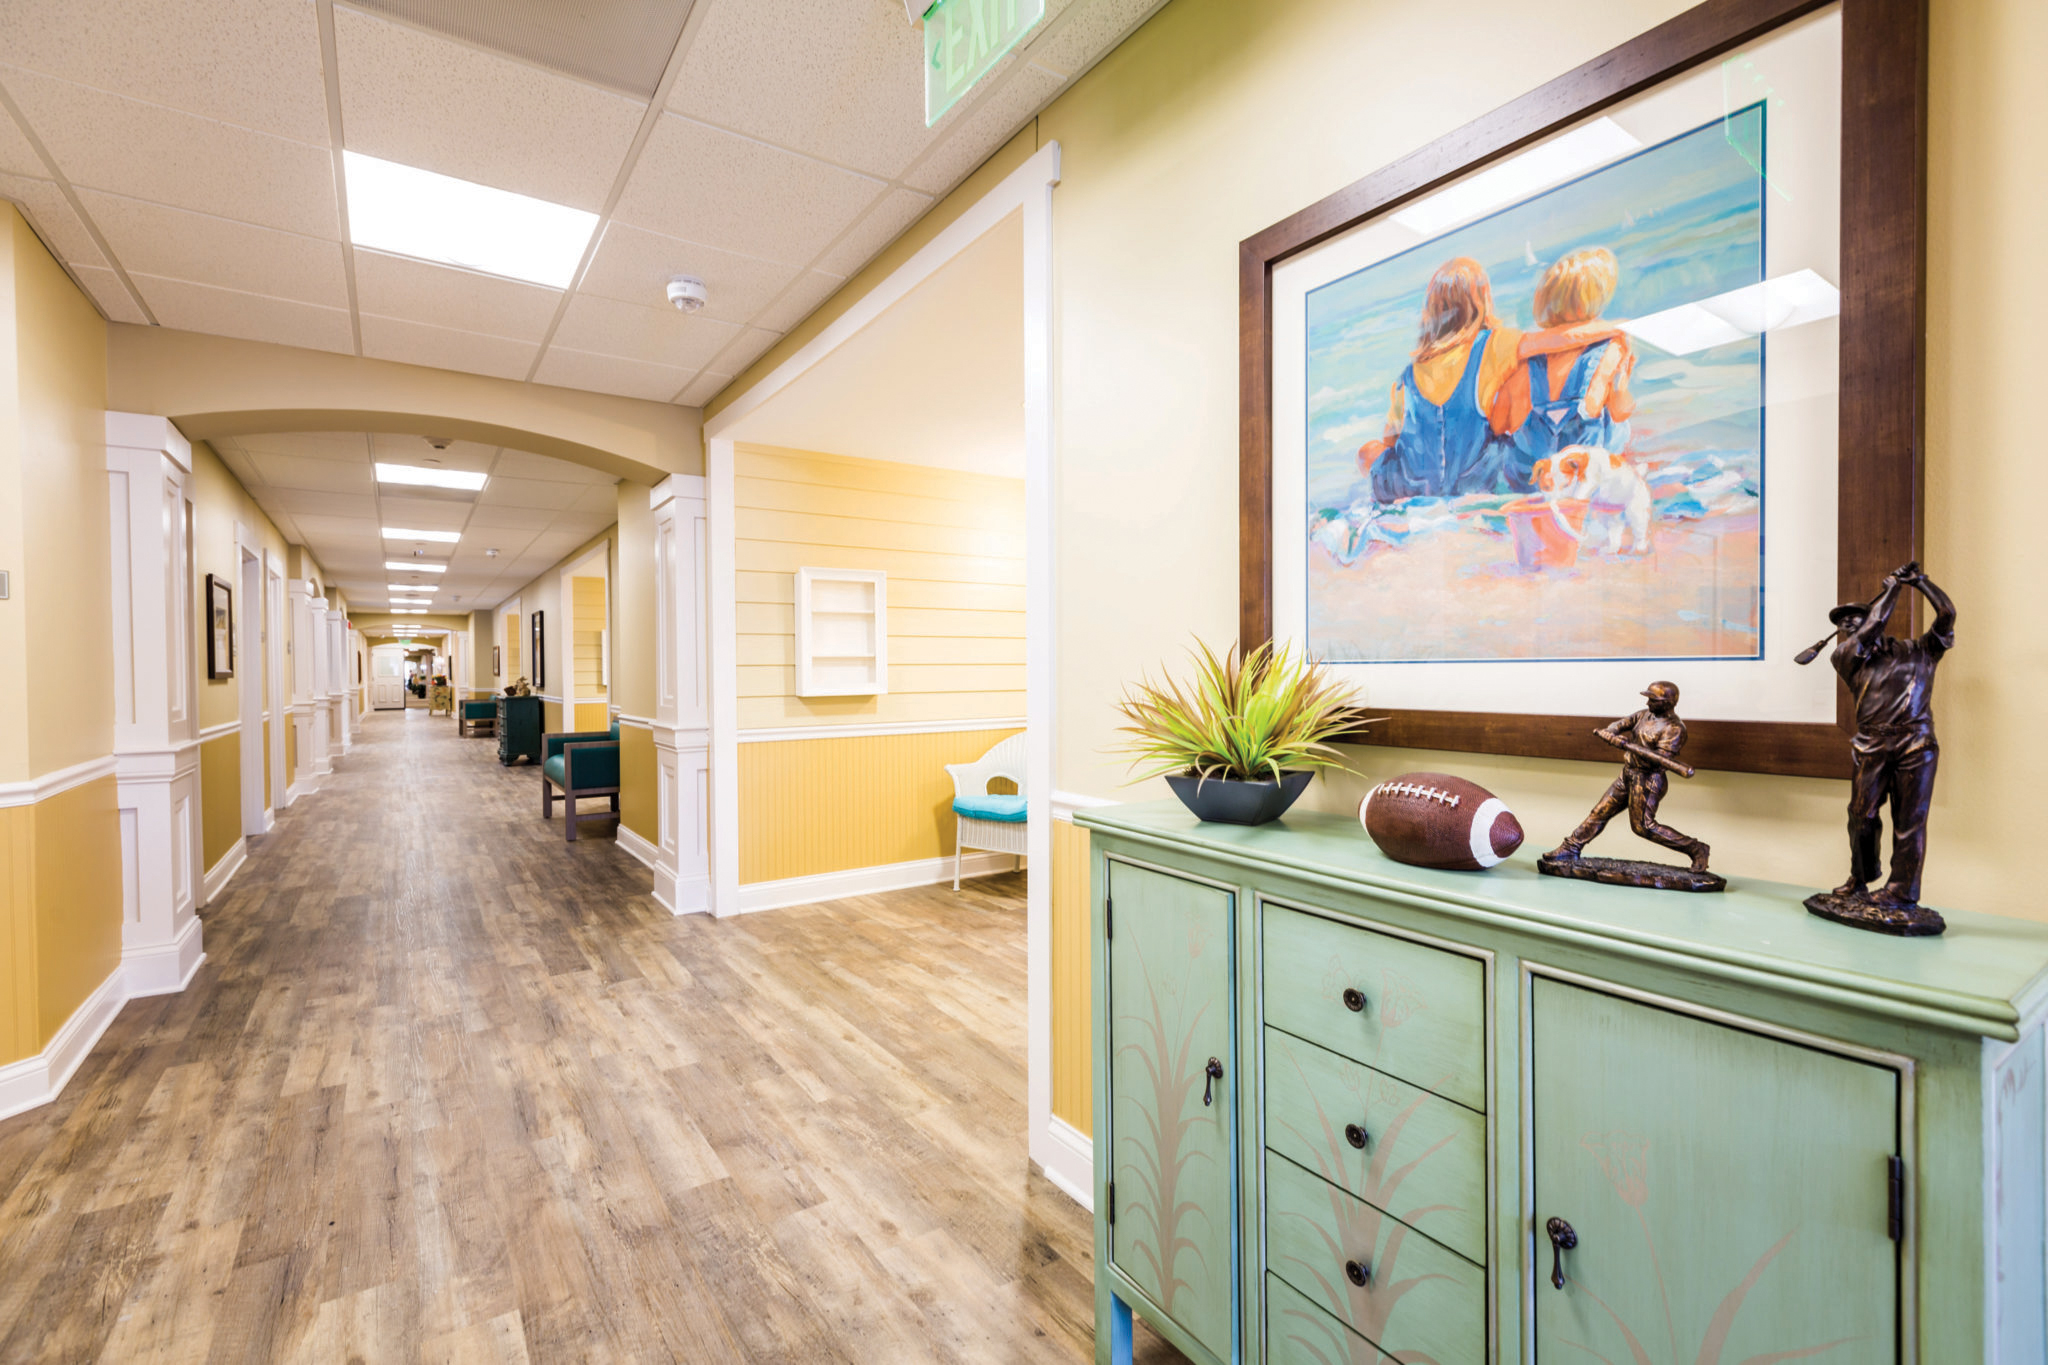 Westbrook Assisted Living & Memory Care Hallway.jpg